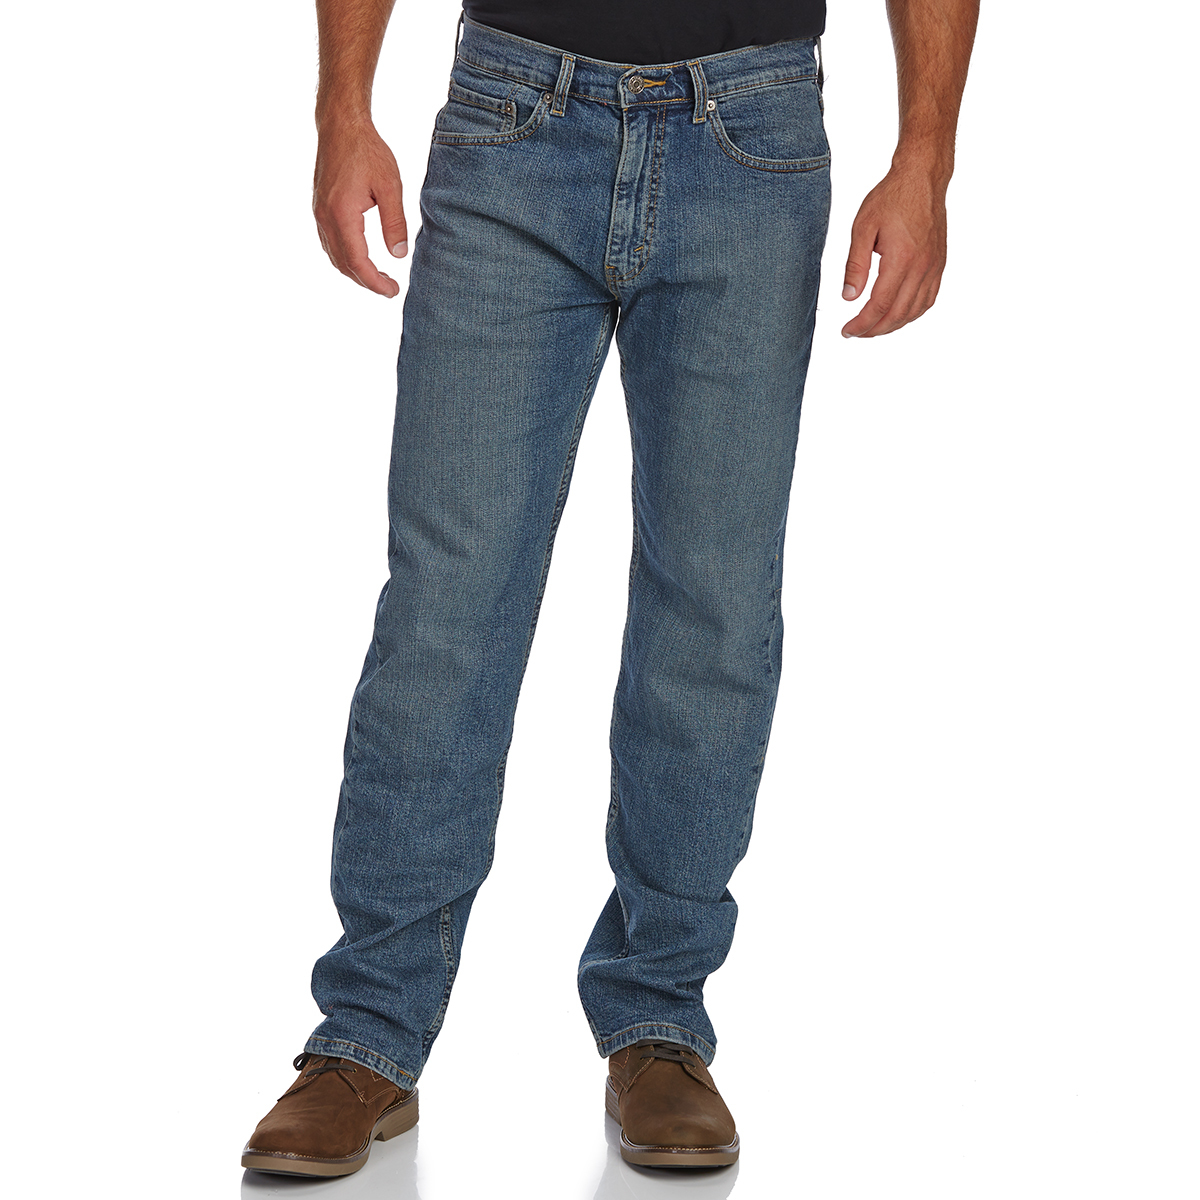 Signature By Levi Strauss & Co. Gold Label Men's Regular Fit Jeans - Discontinued Style - Blue, 38/30